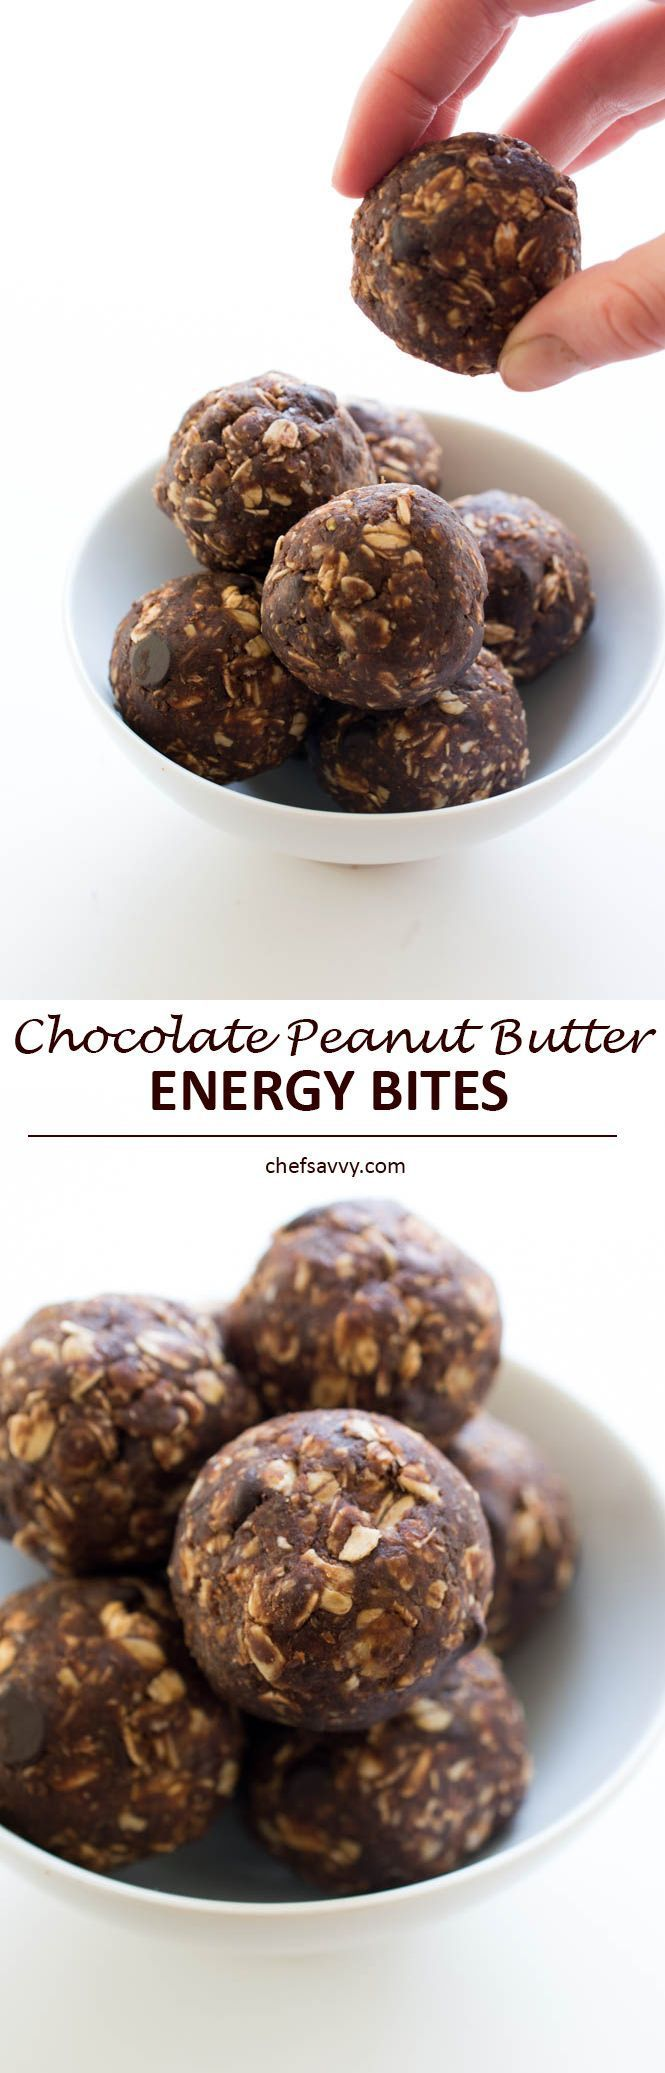 No Bake Chocolate Peanut Butter Energy Bites.